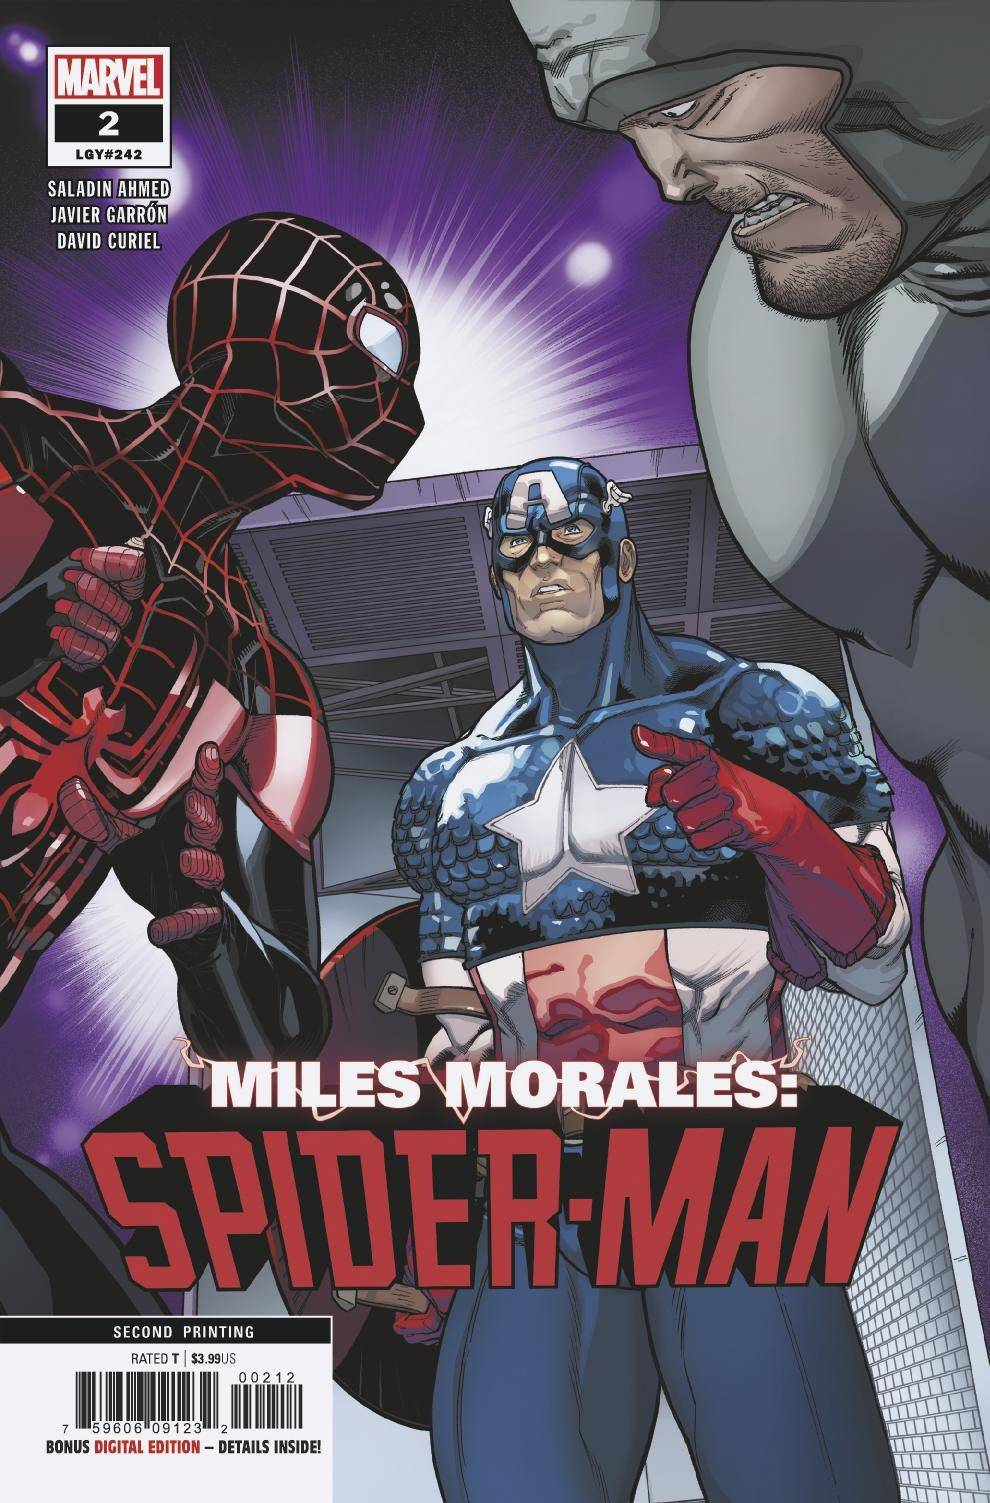 Miles Morales Spider-Man Vol 1 2 Second Printing Variant.jpg